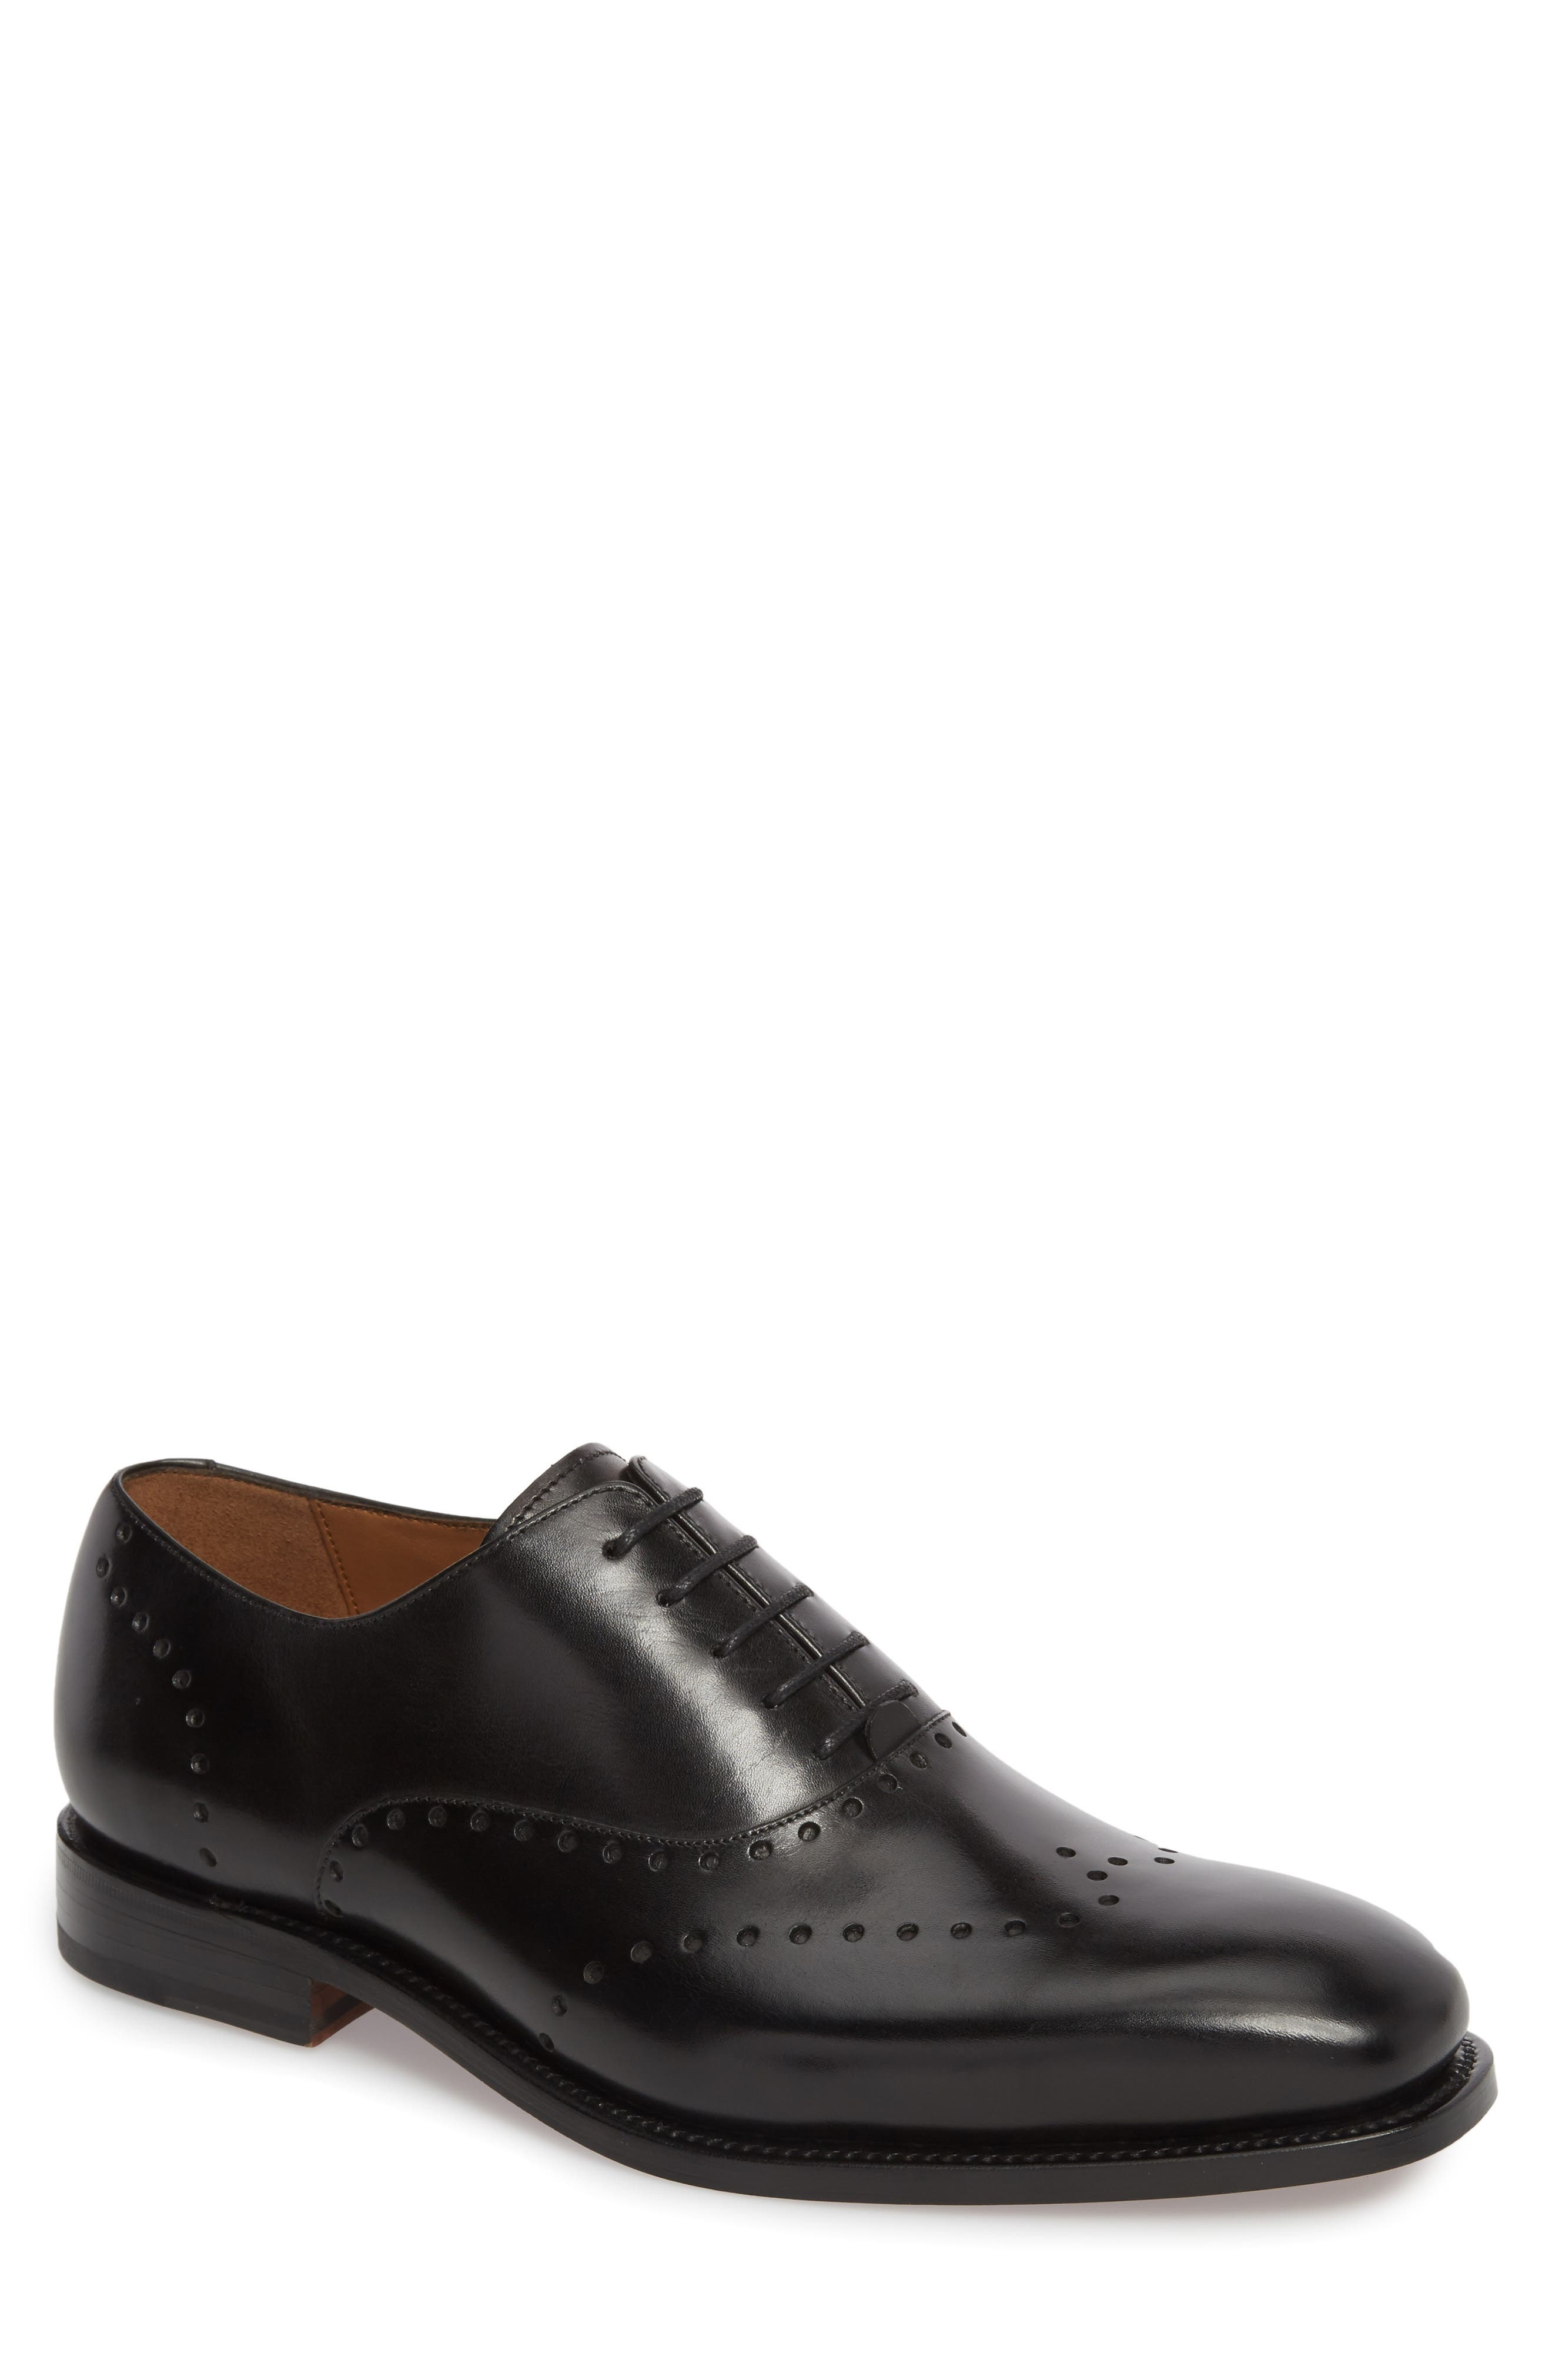 Belvedere Perforated Wingtip Oxford,                         Main,                         color, Black